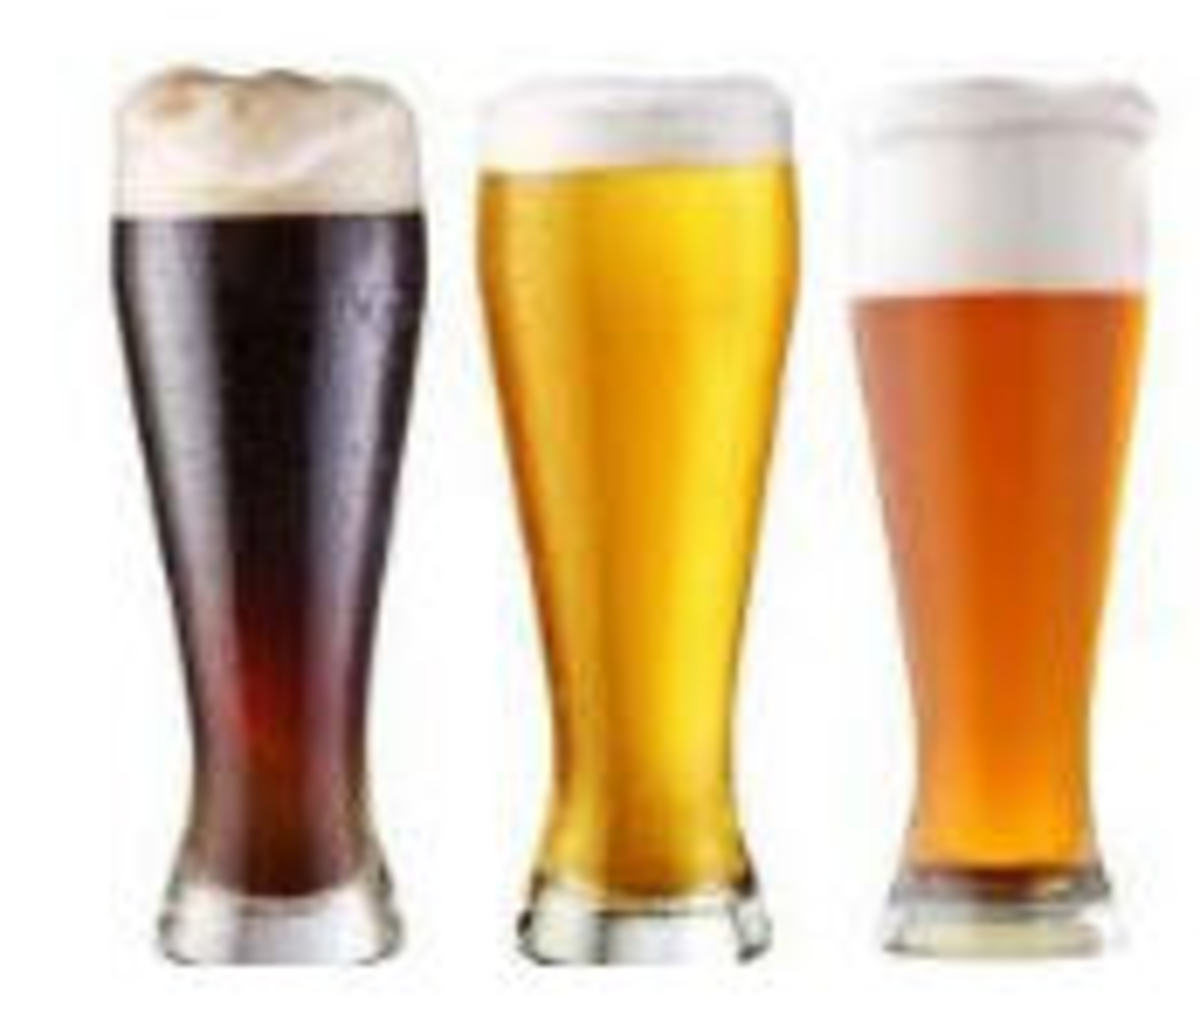 Non pasteurized beers